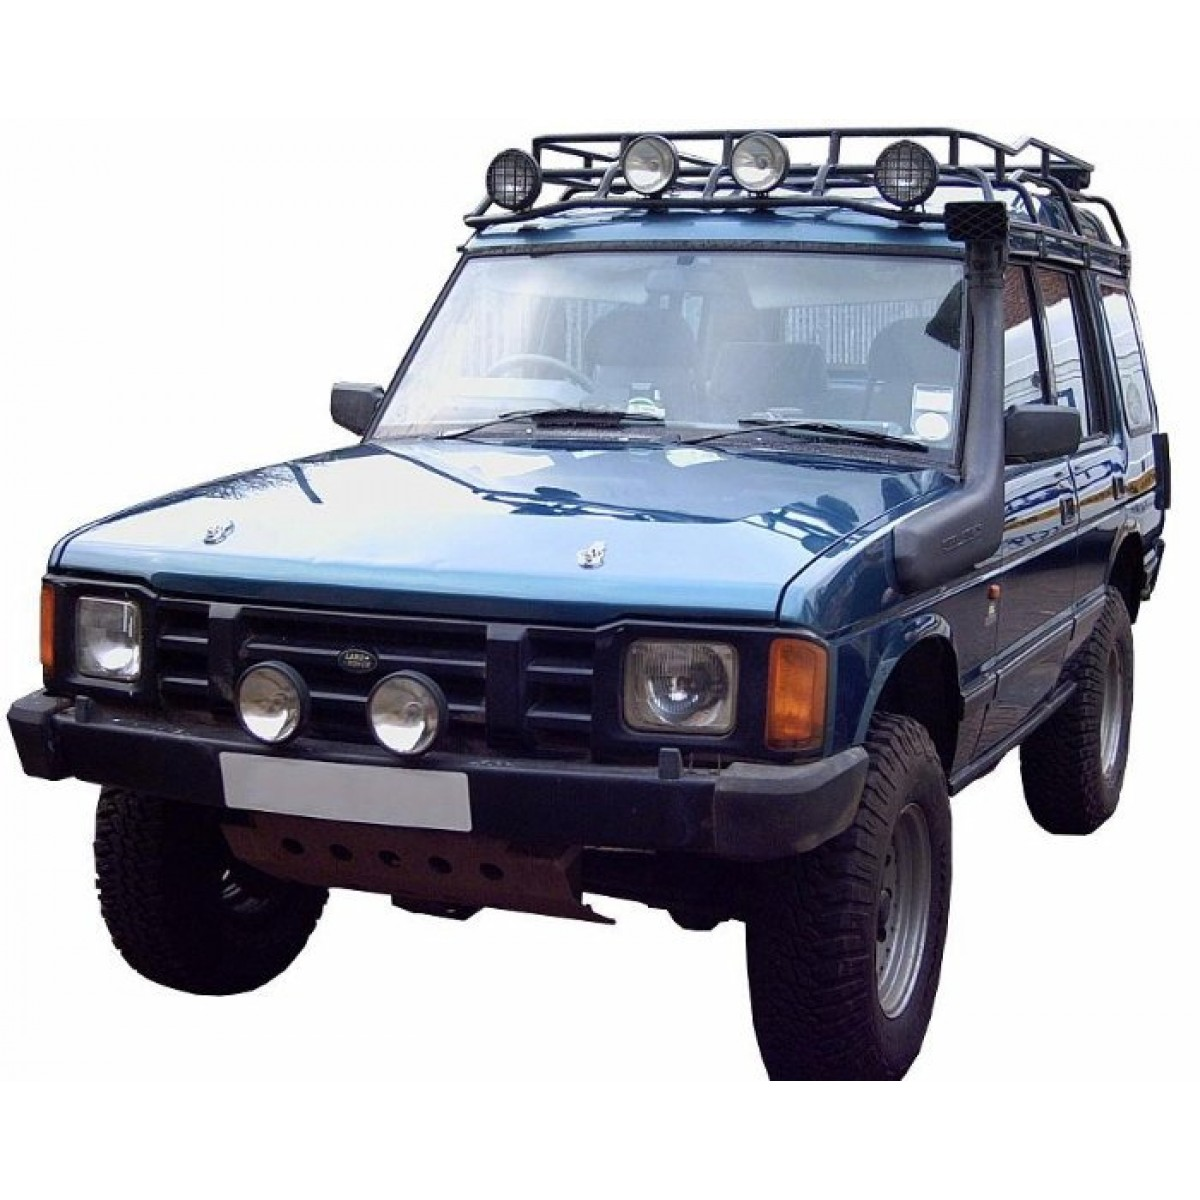 SNORKEL LAND ROVER DISCOVERY I 200